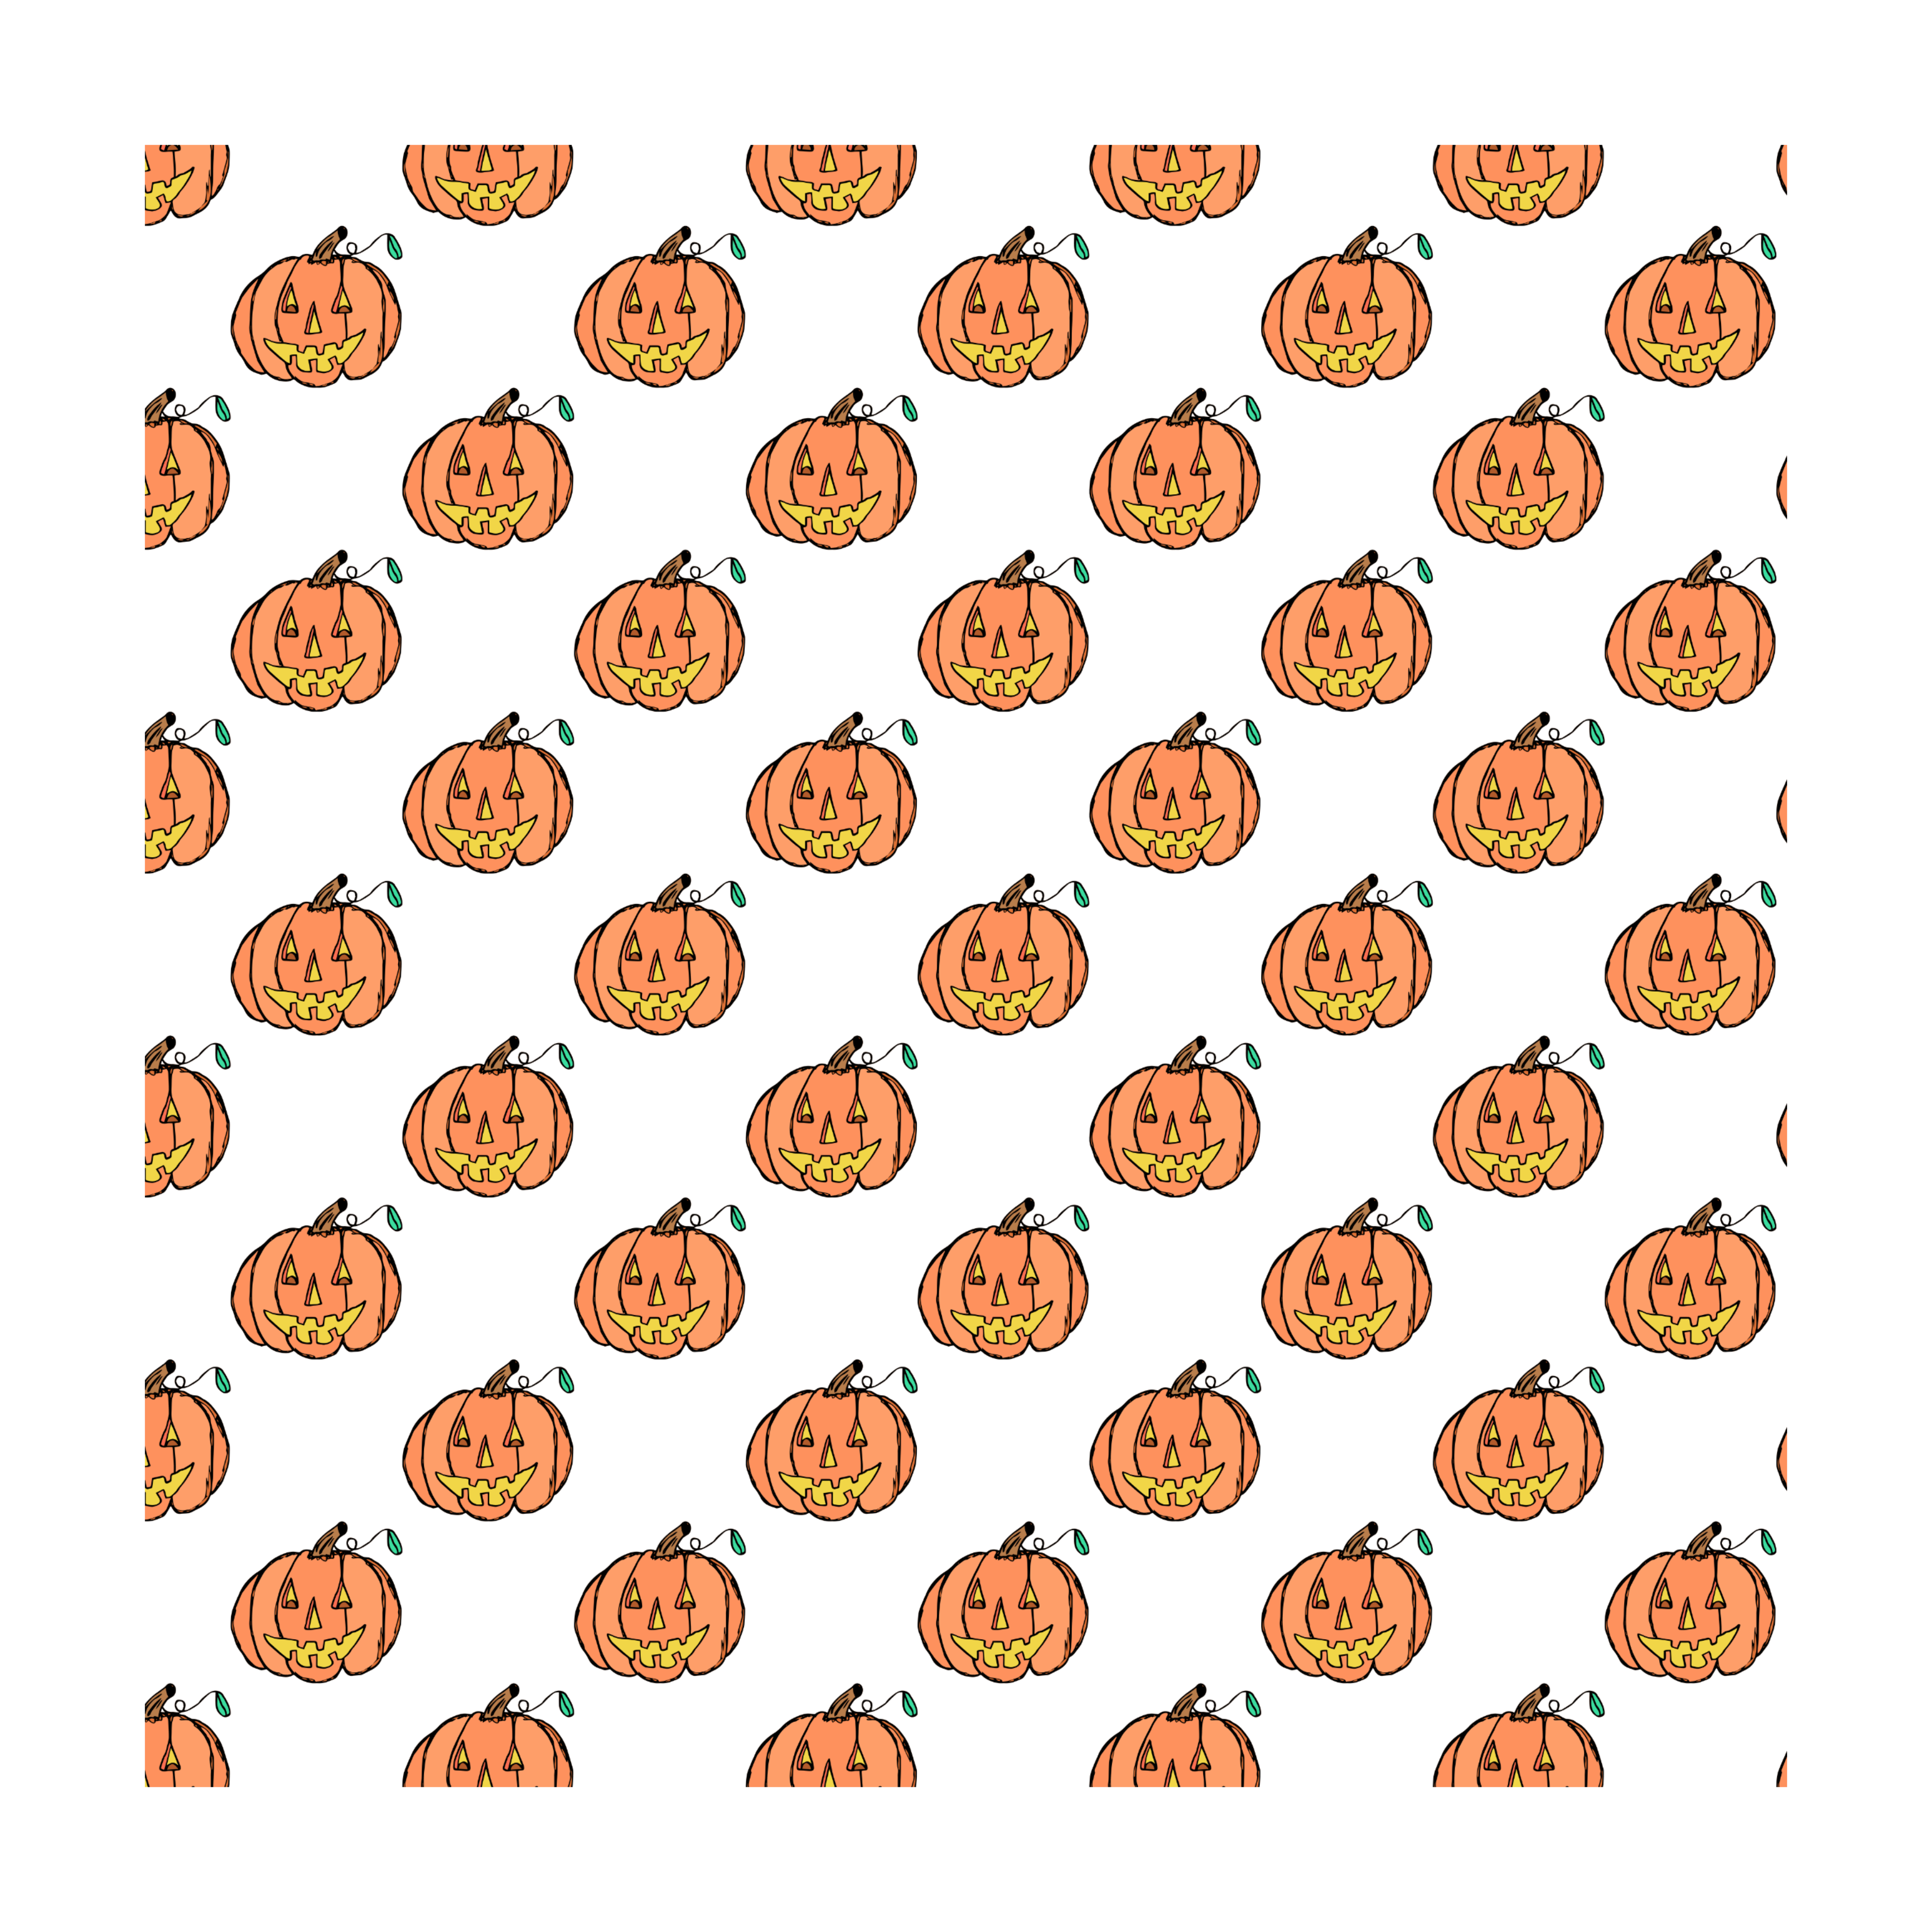 Aesthetic Halloween Wallpaper Posted By Ethan Peltier